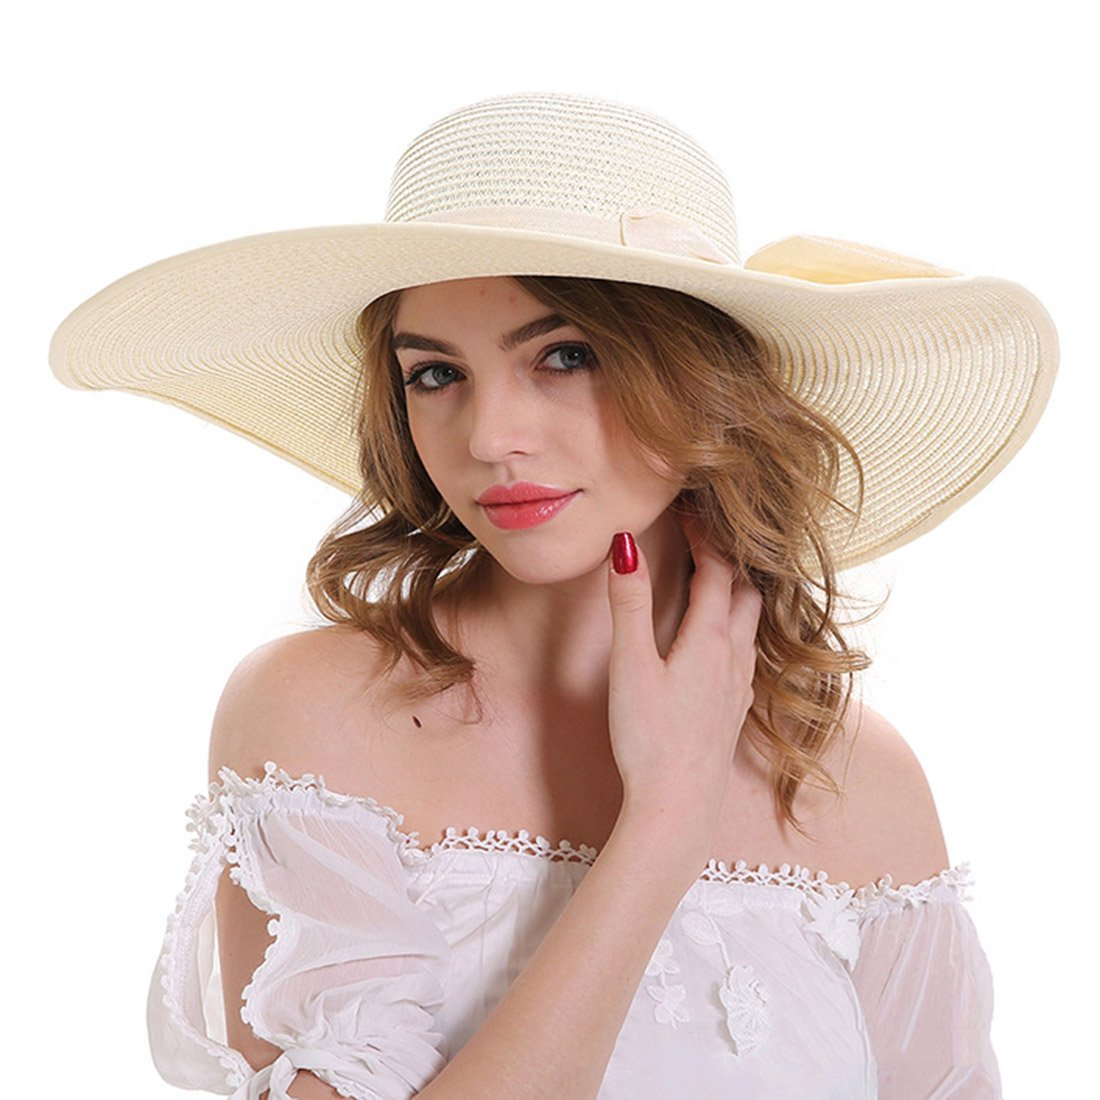 Dingtuo Women Straw Sun Hat Foldable Wide Brim Floppy Summer Beach UV Protection Hats with Bowknot for Outdoor Travel Beige